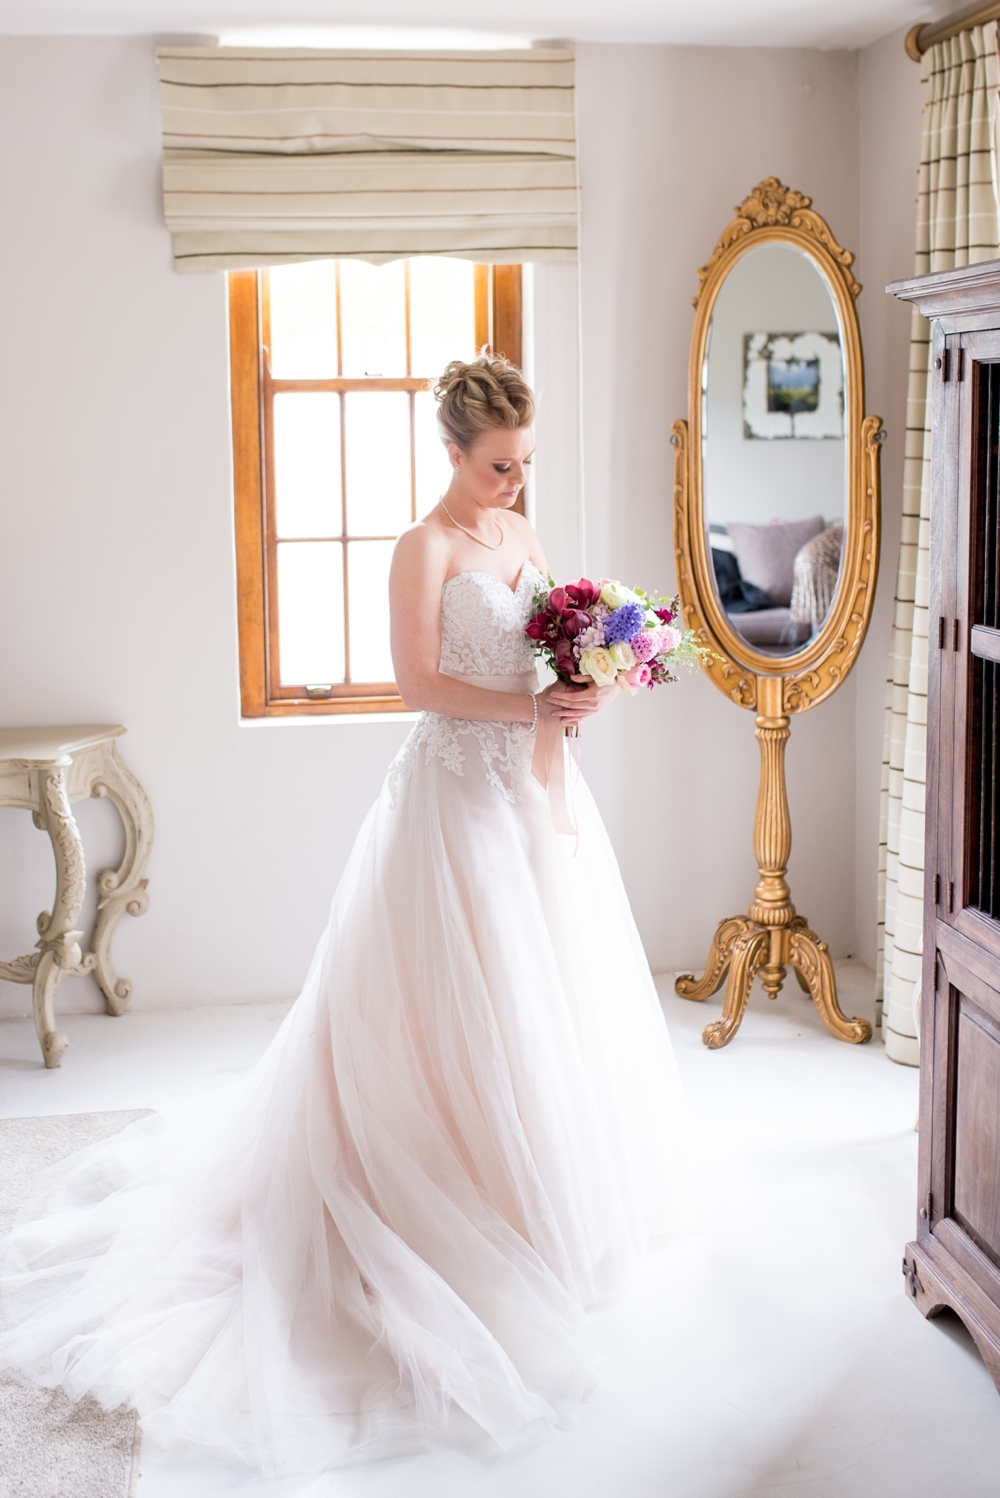 Bride in Romantic Tulle Gown | Credit: Cheryl McEwan